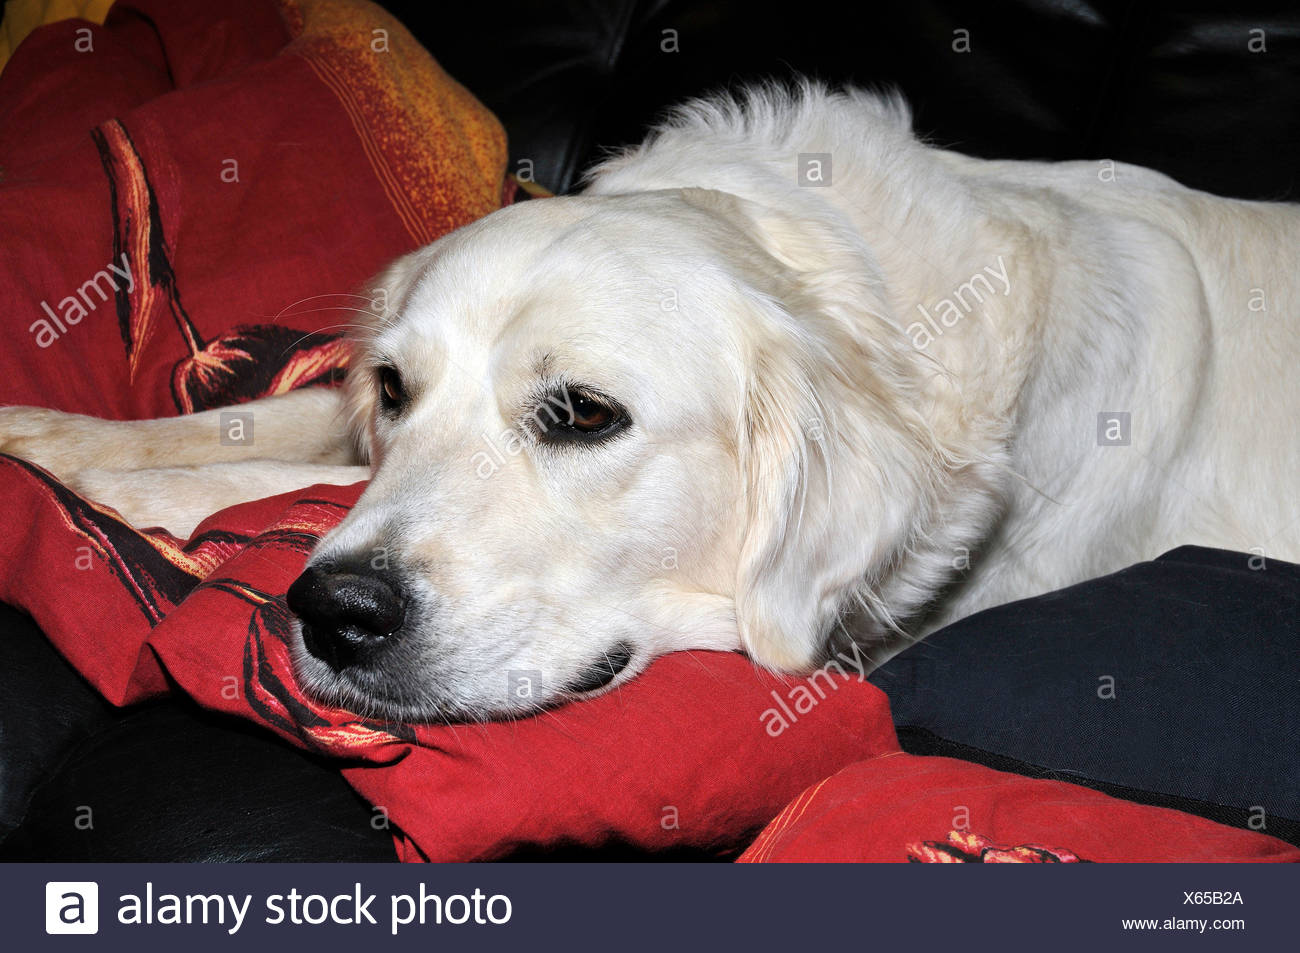 Zlaty Retrivr Golden Retriever Stock Photos   Zlaty Retrivr Golden ... 2097429e4dd